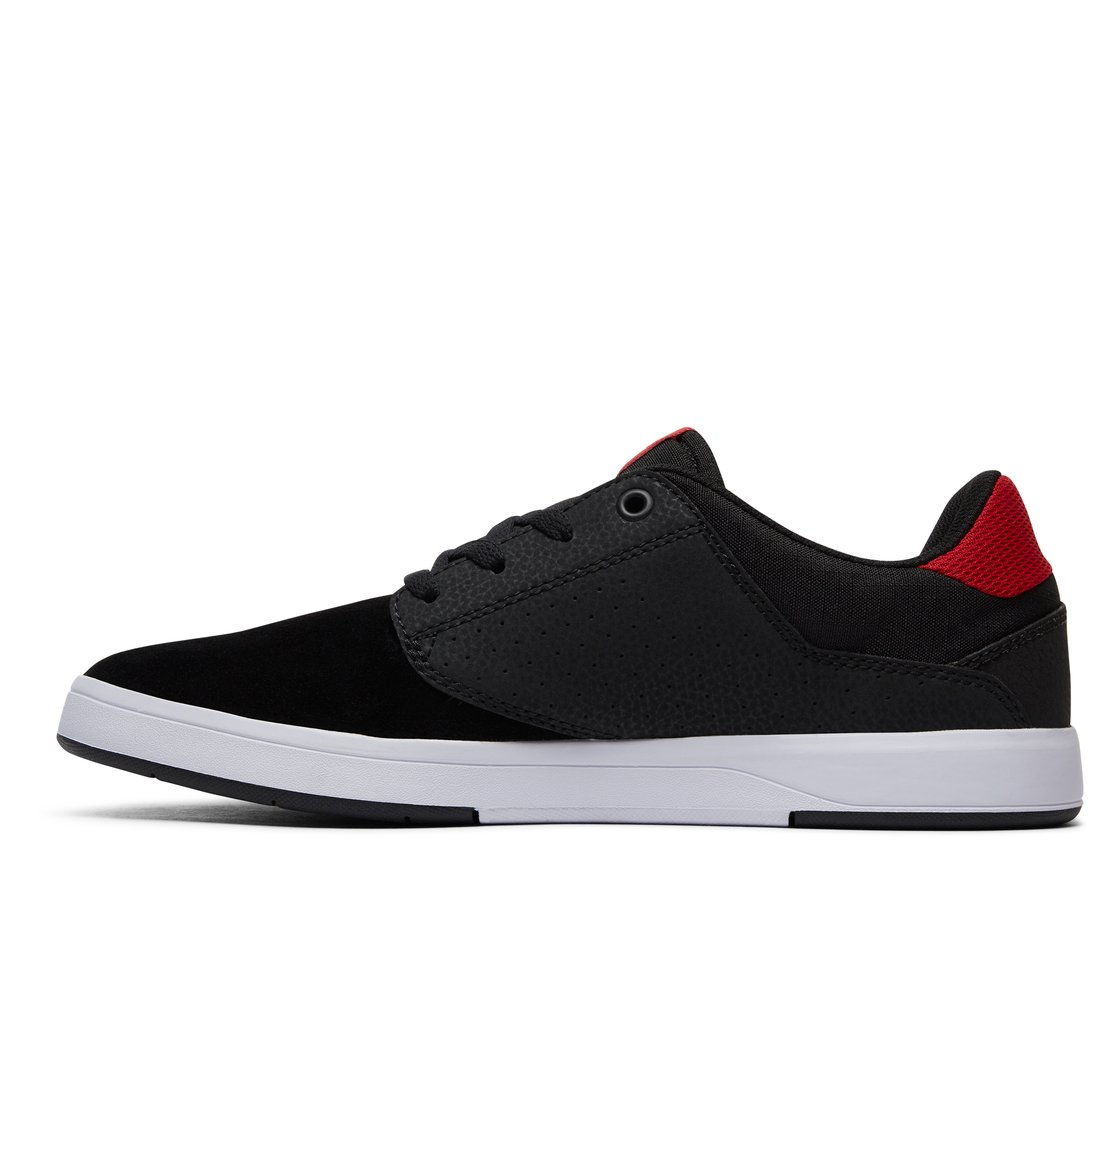 Chaussures DC Plaza Tc S Black Athletic Red Bah nyqZIa4qv